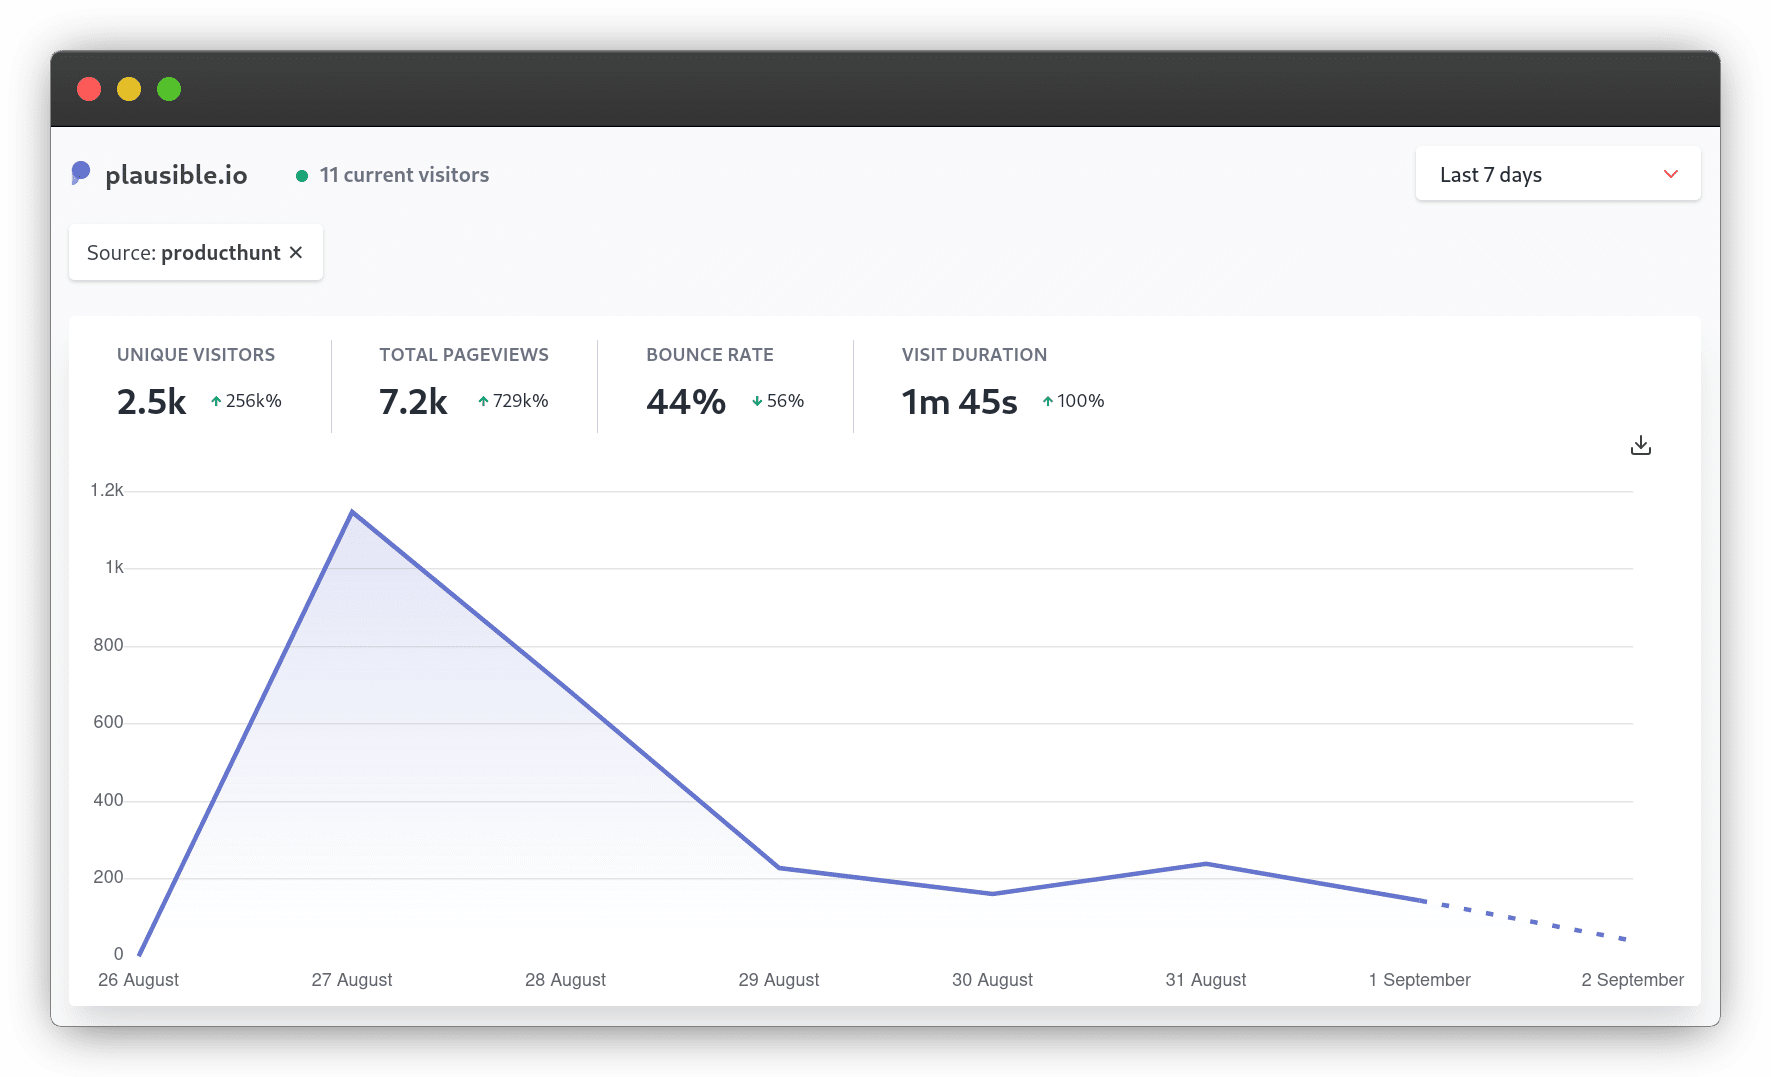 Our Product Hunt launch website traffic